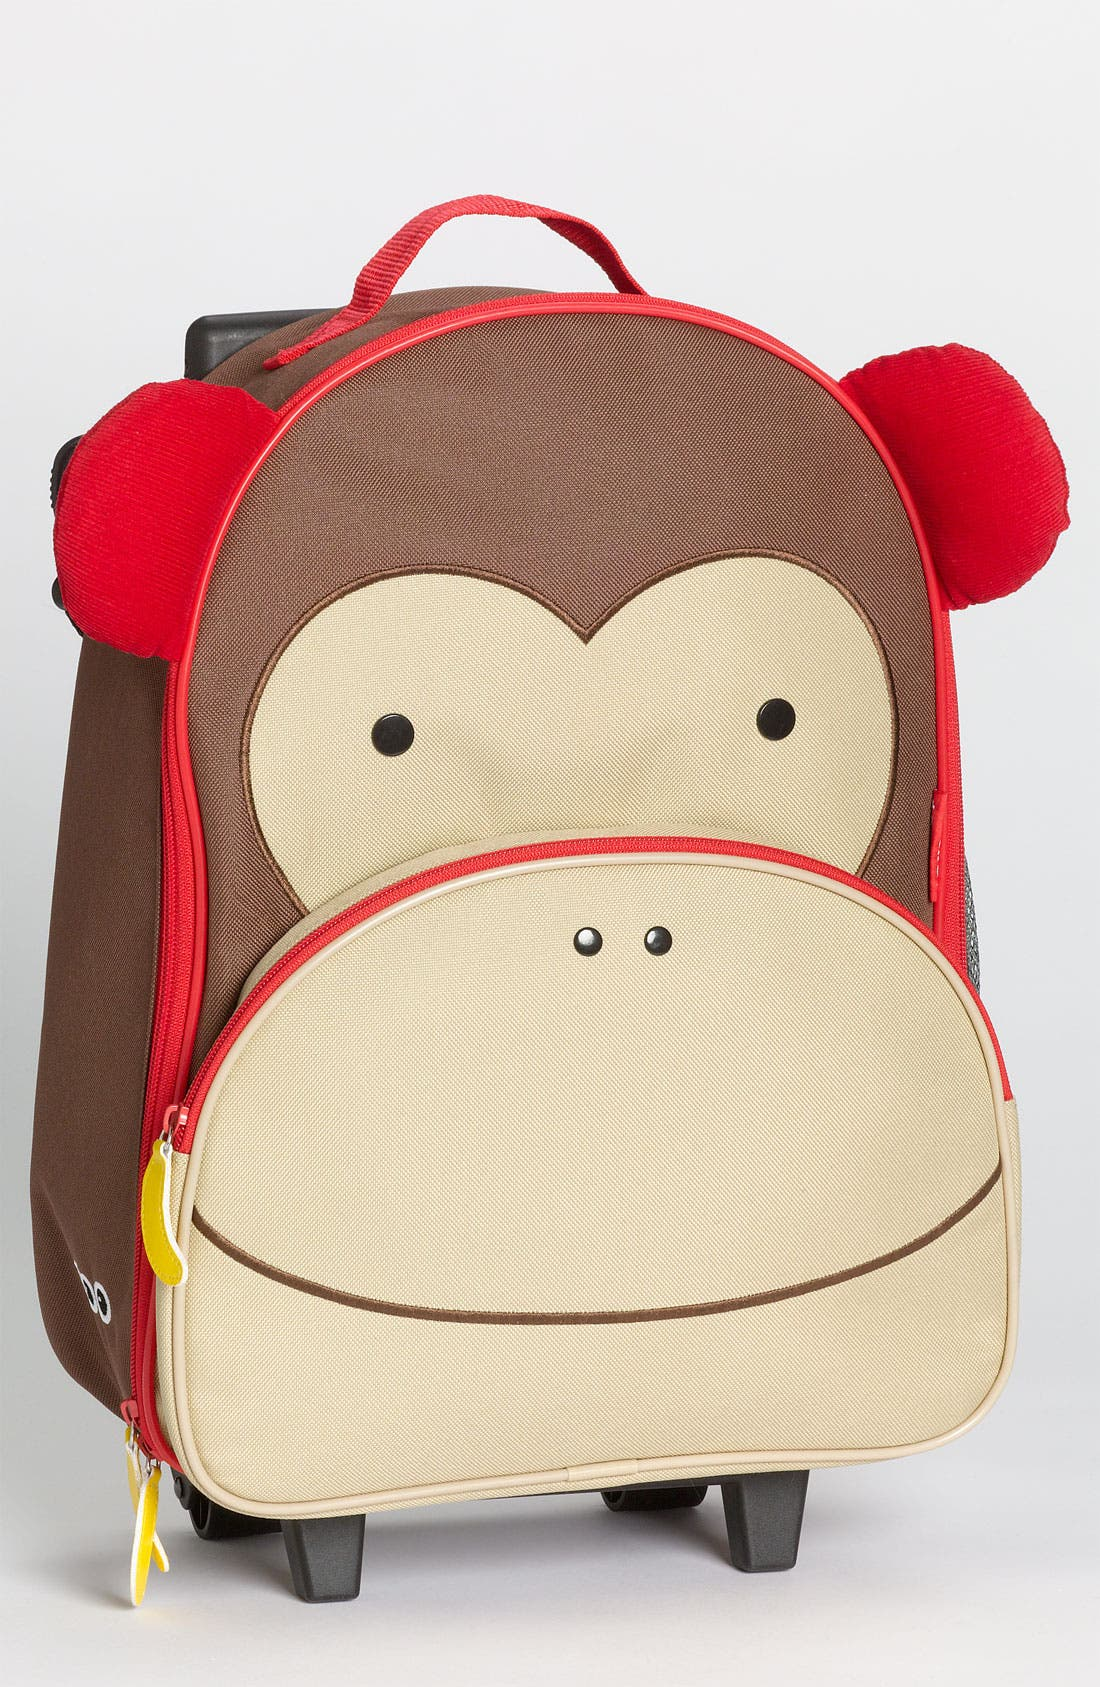 SKIP HOP, Monkey Rolling Luggage, Main thumbnail 1, color, BROWN